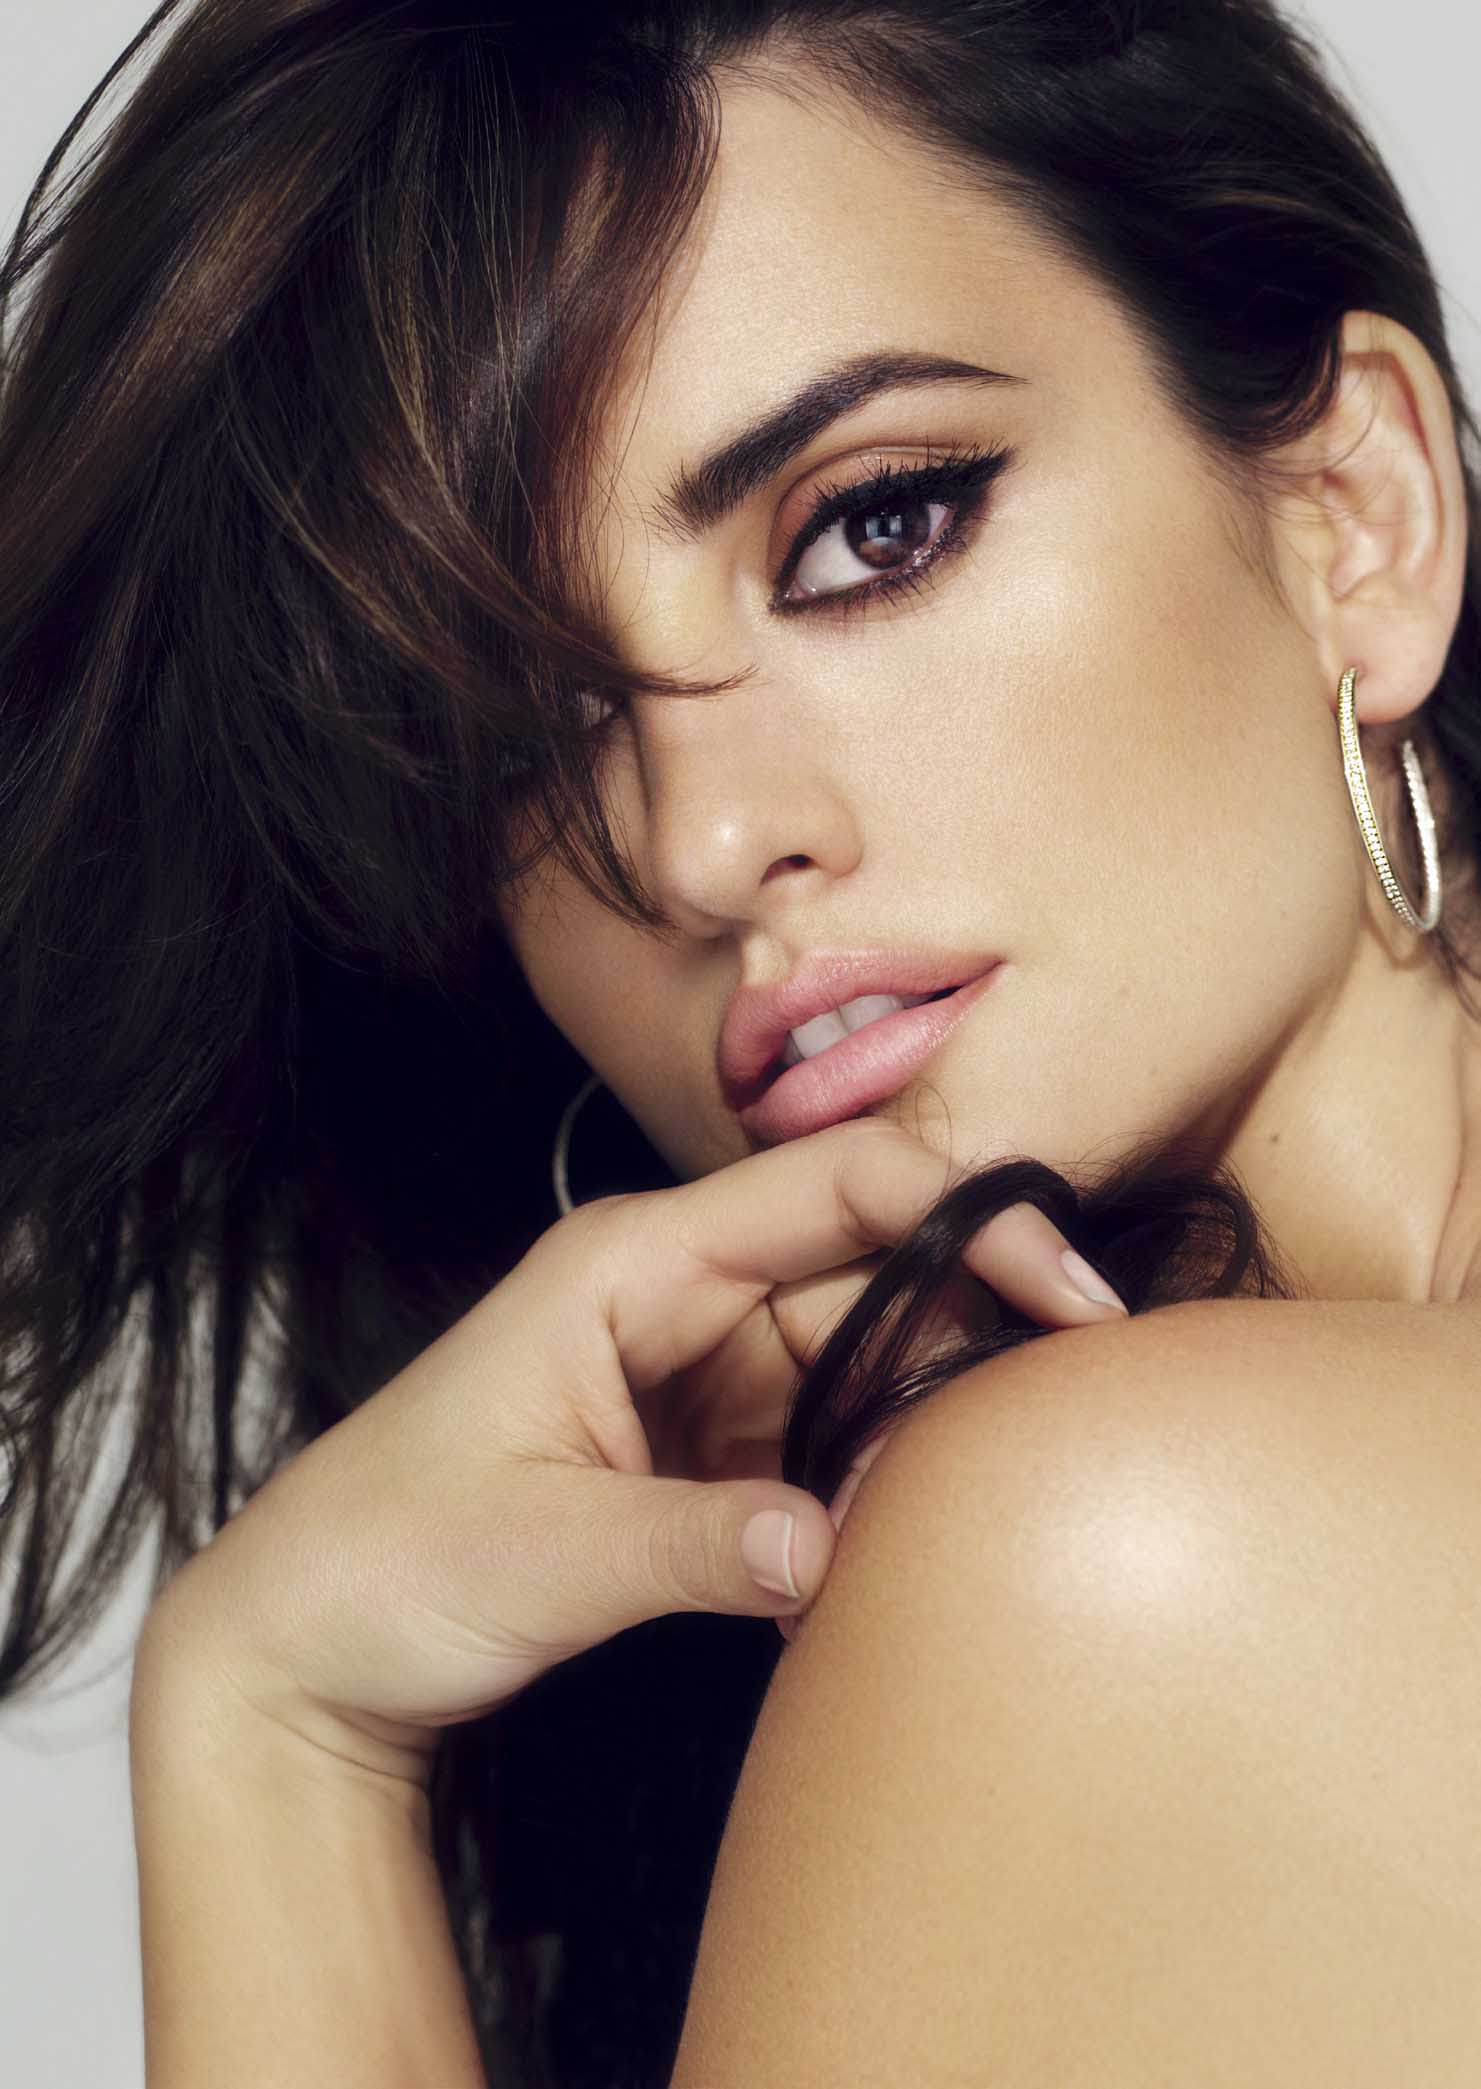 Naked Pictures Of Penelope Cruz 35